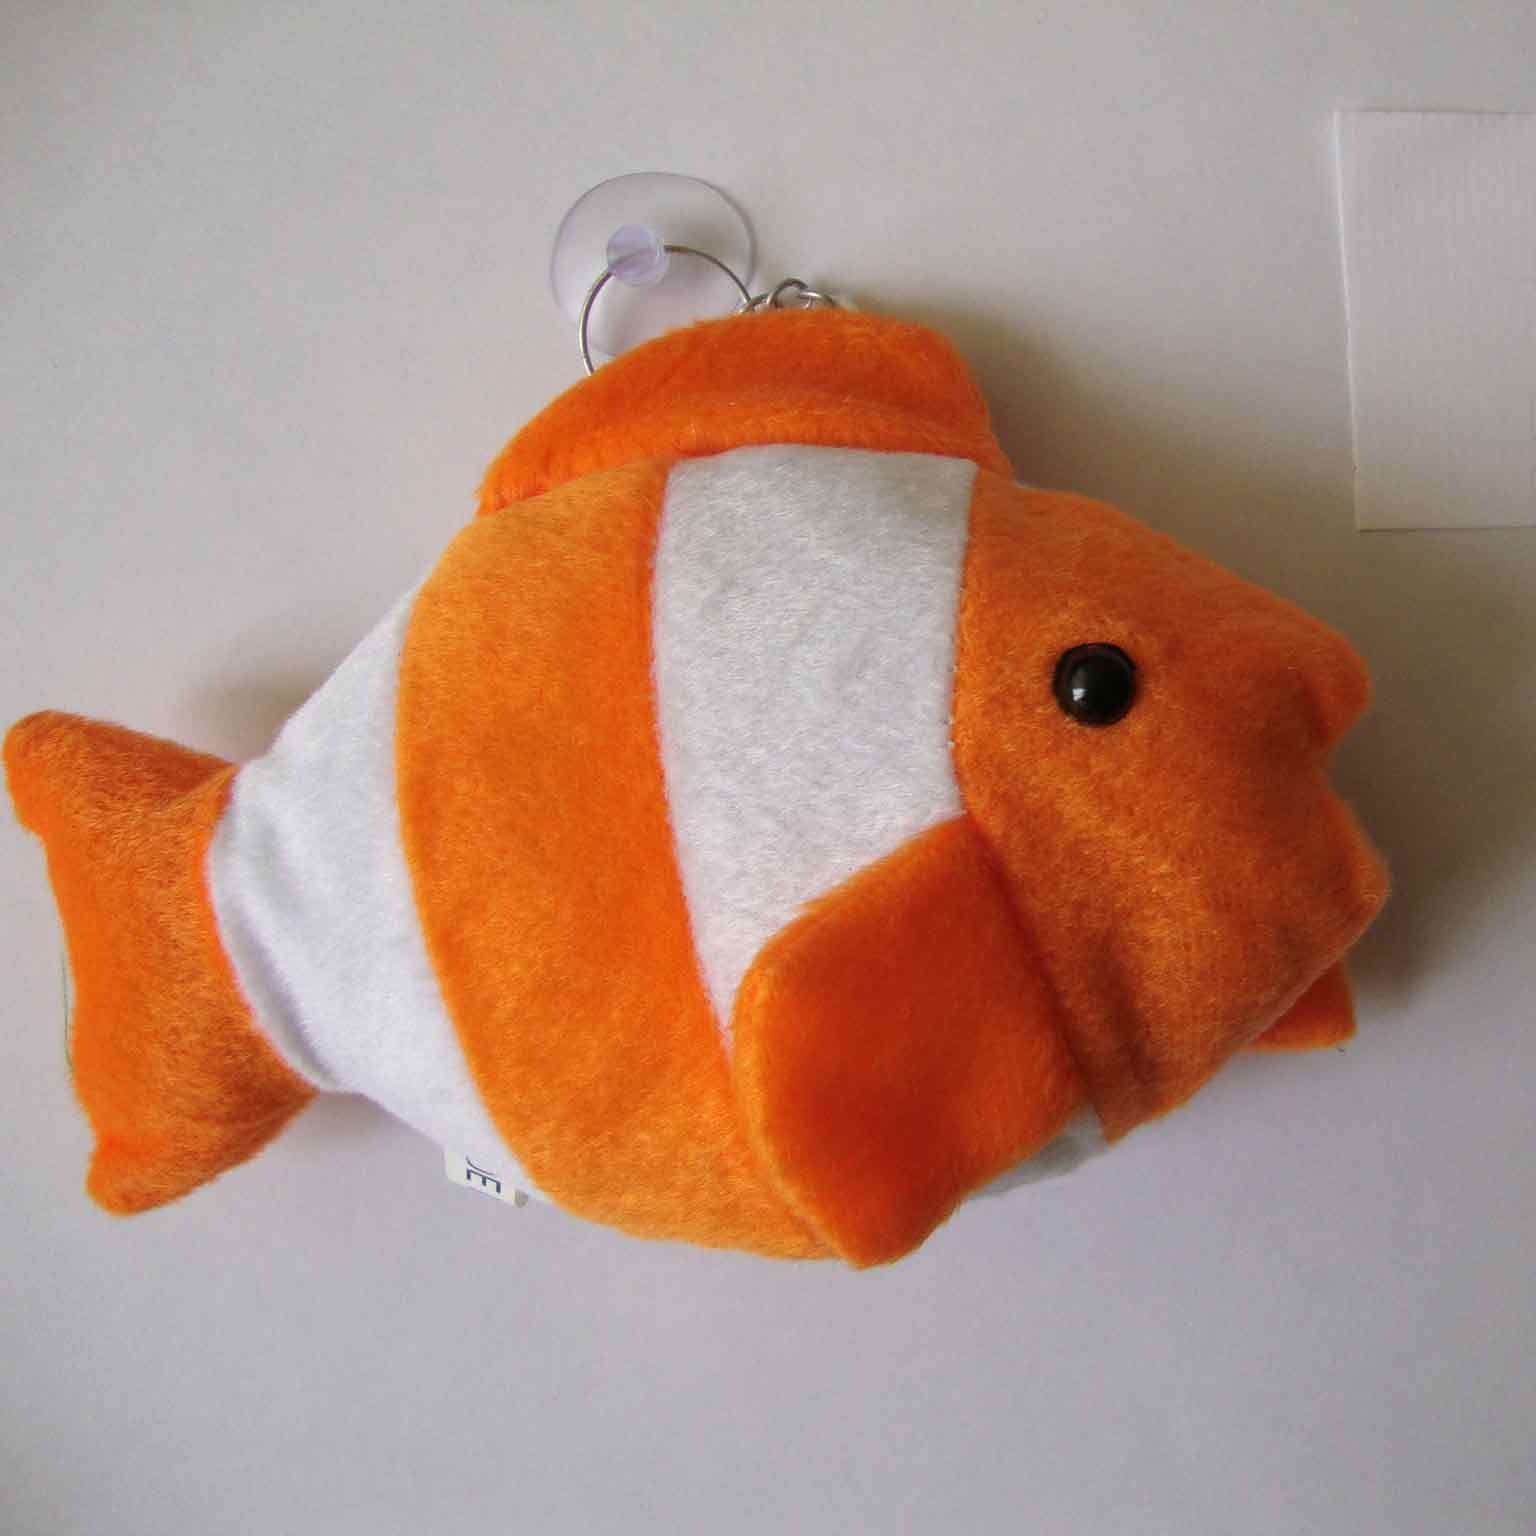 China plush toy fish china plush toy stuffed toy for Fish stuffed animal